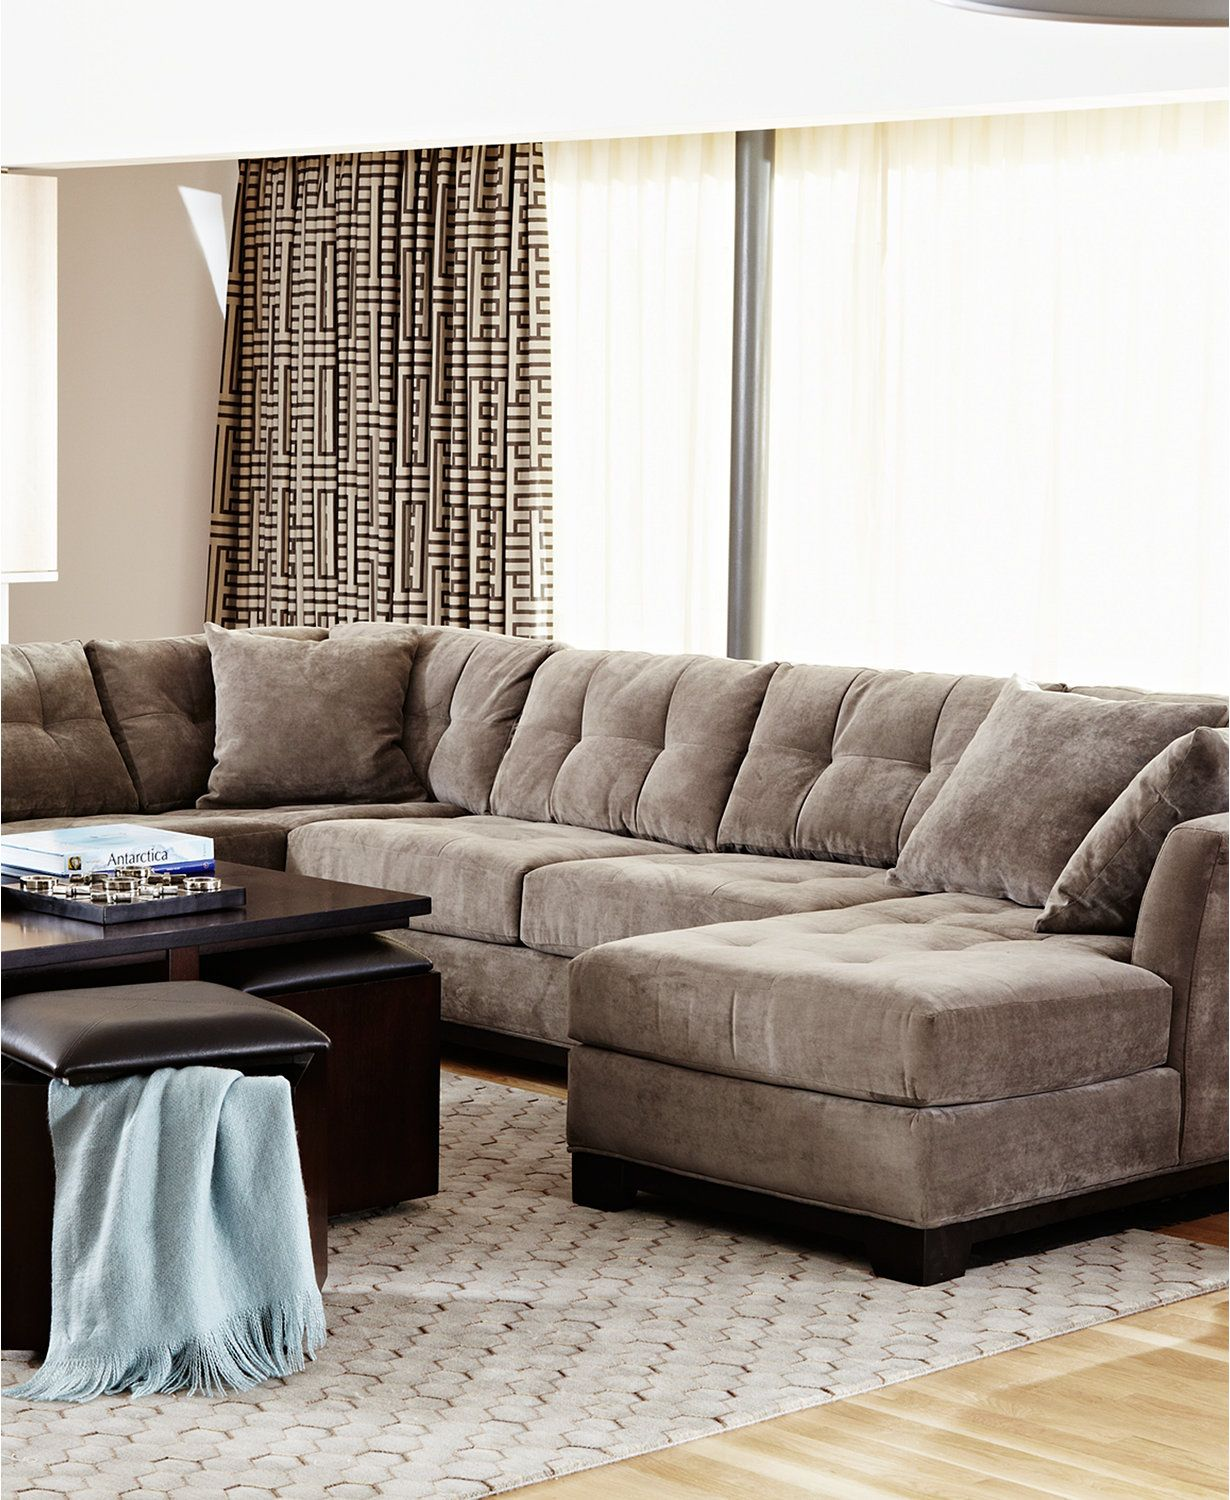 Elliot Fabric Microfiber 3Piece Chaise Sectional Sofa macyscom